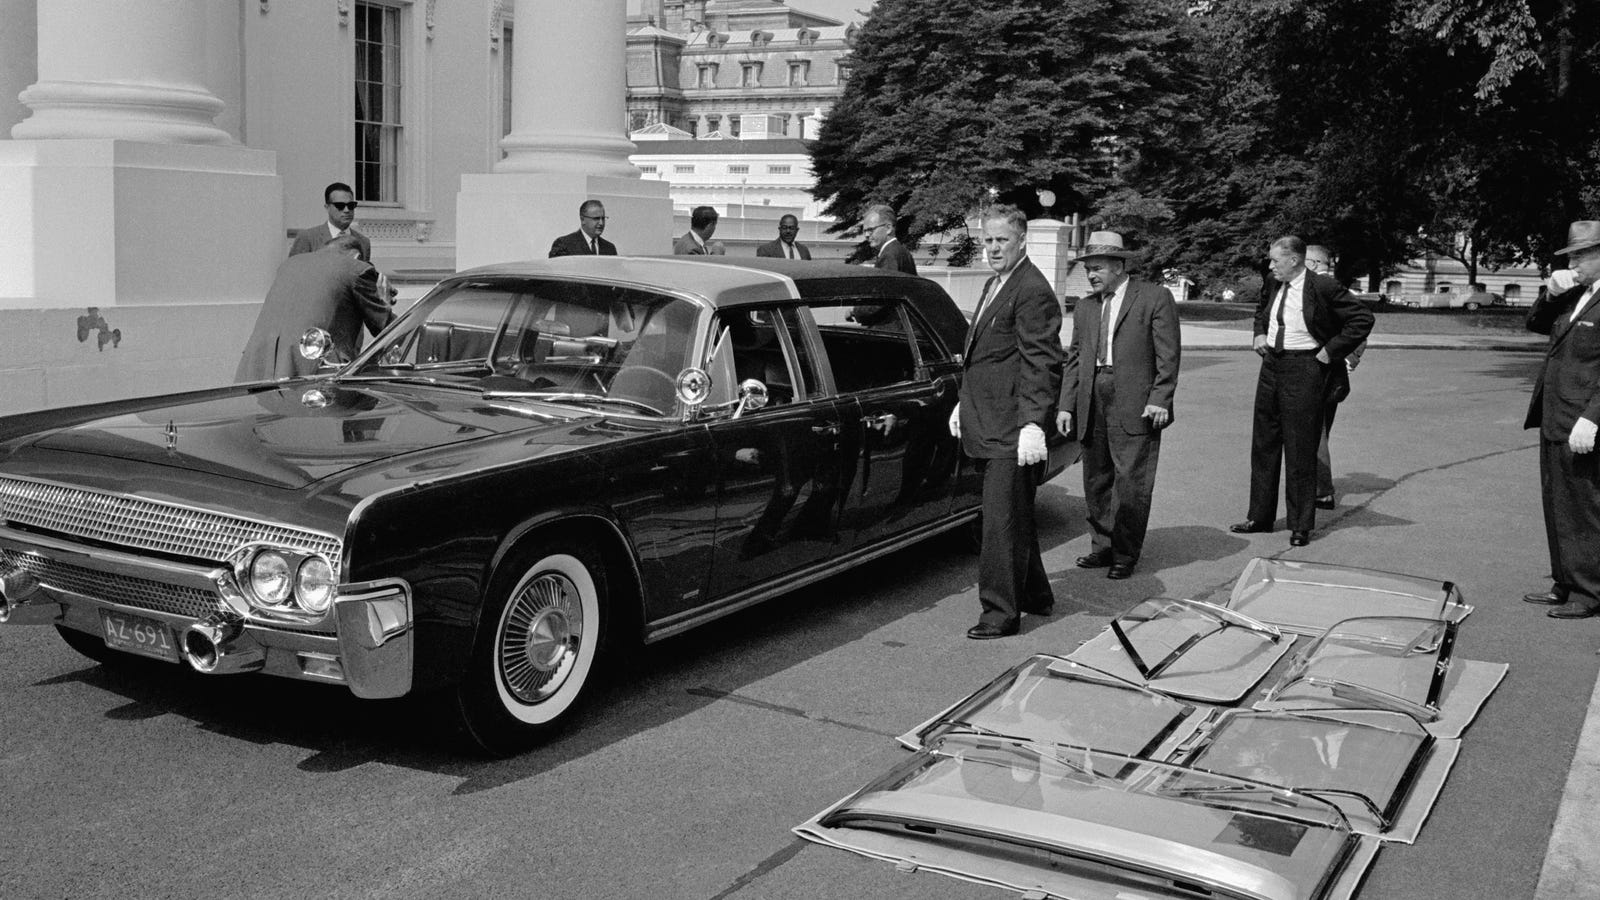 Why Jfk S Limousine Stayed In Service For 13 Years After